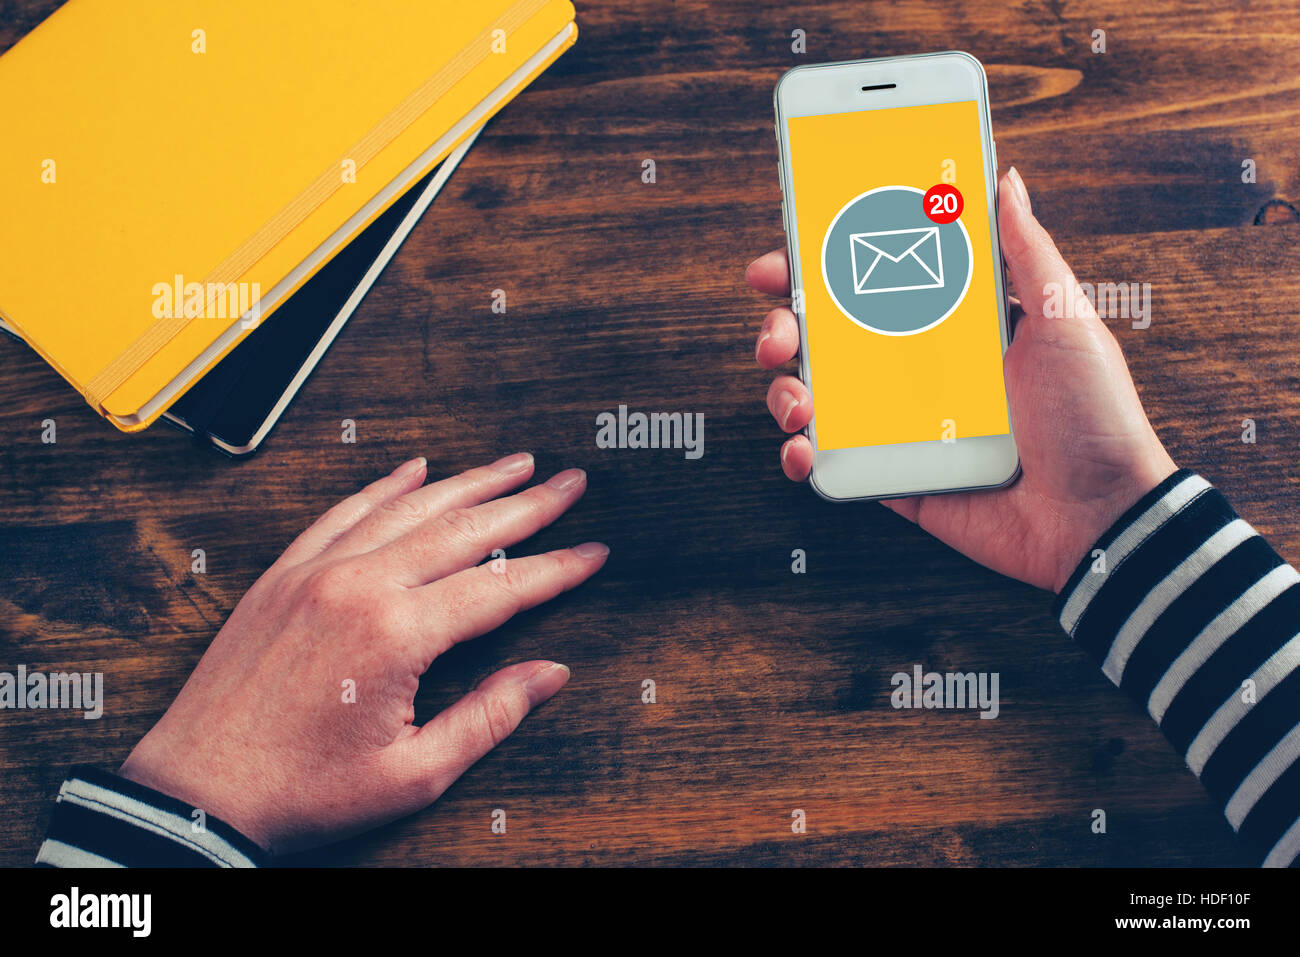 SMS receive notification on smartphone screen, female hands using mobile phone - Stock Image